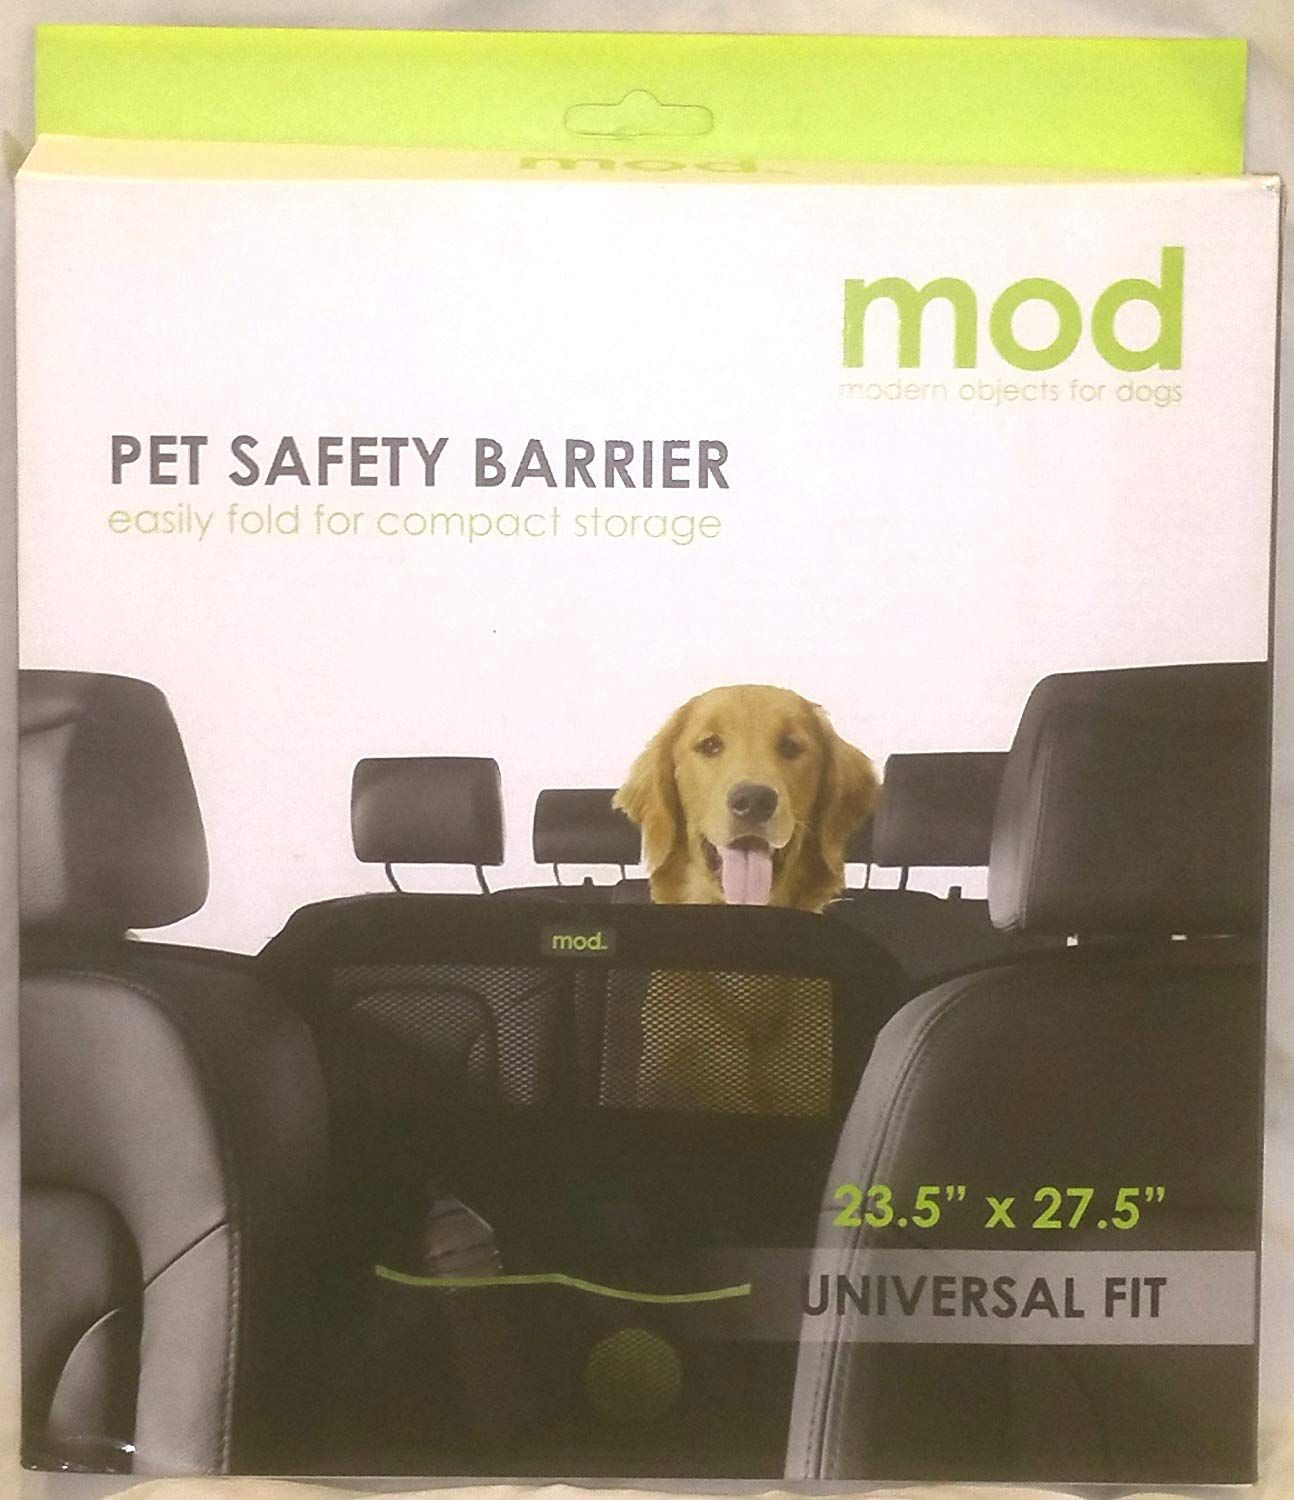 Pet Safety Barrier You Can Get Additional Details At The Image